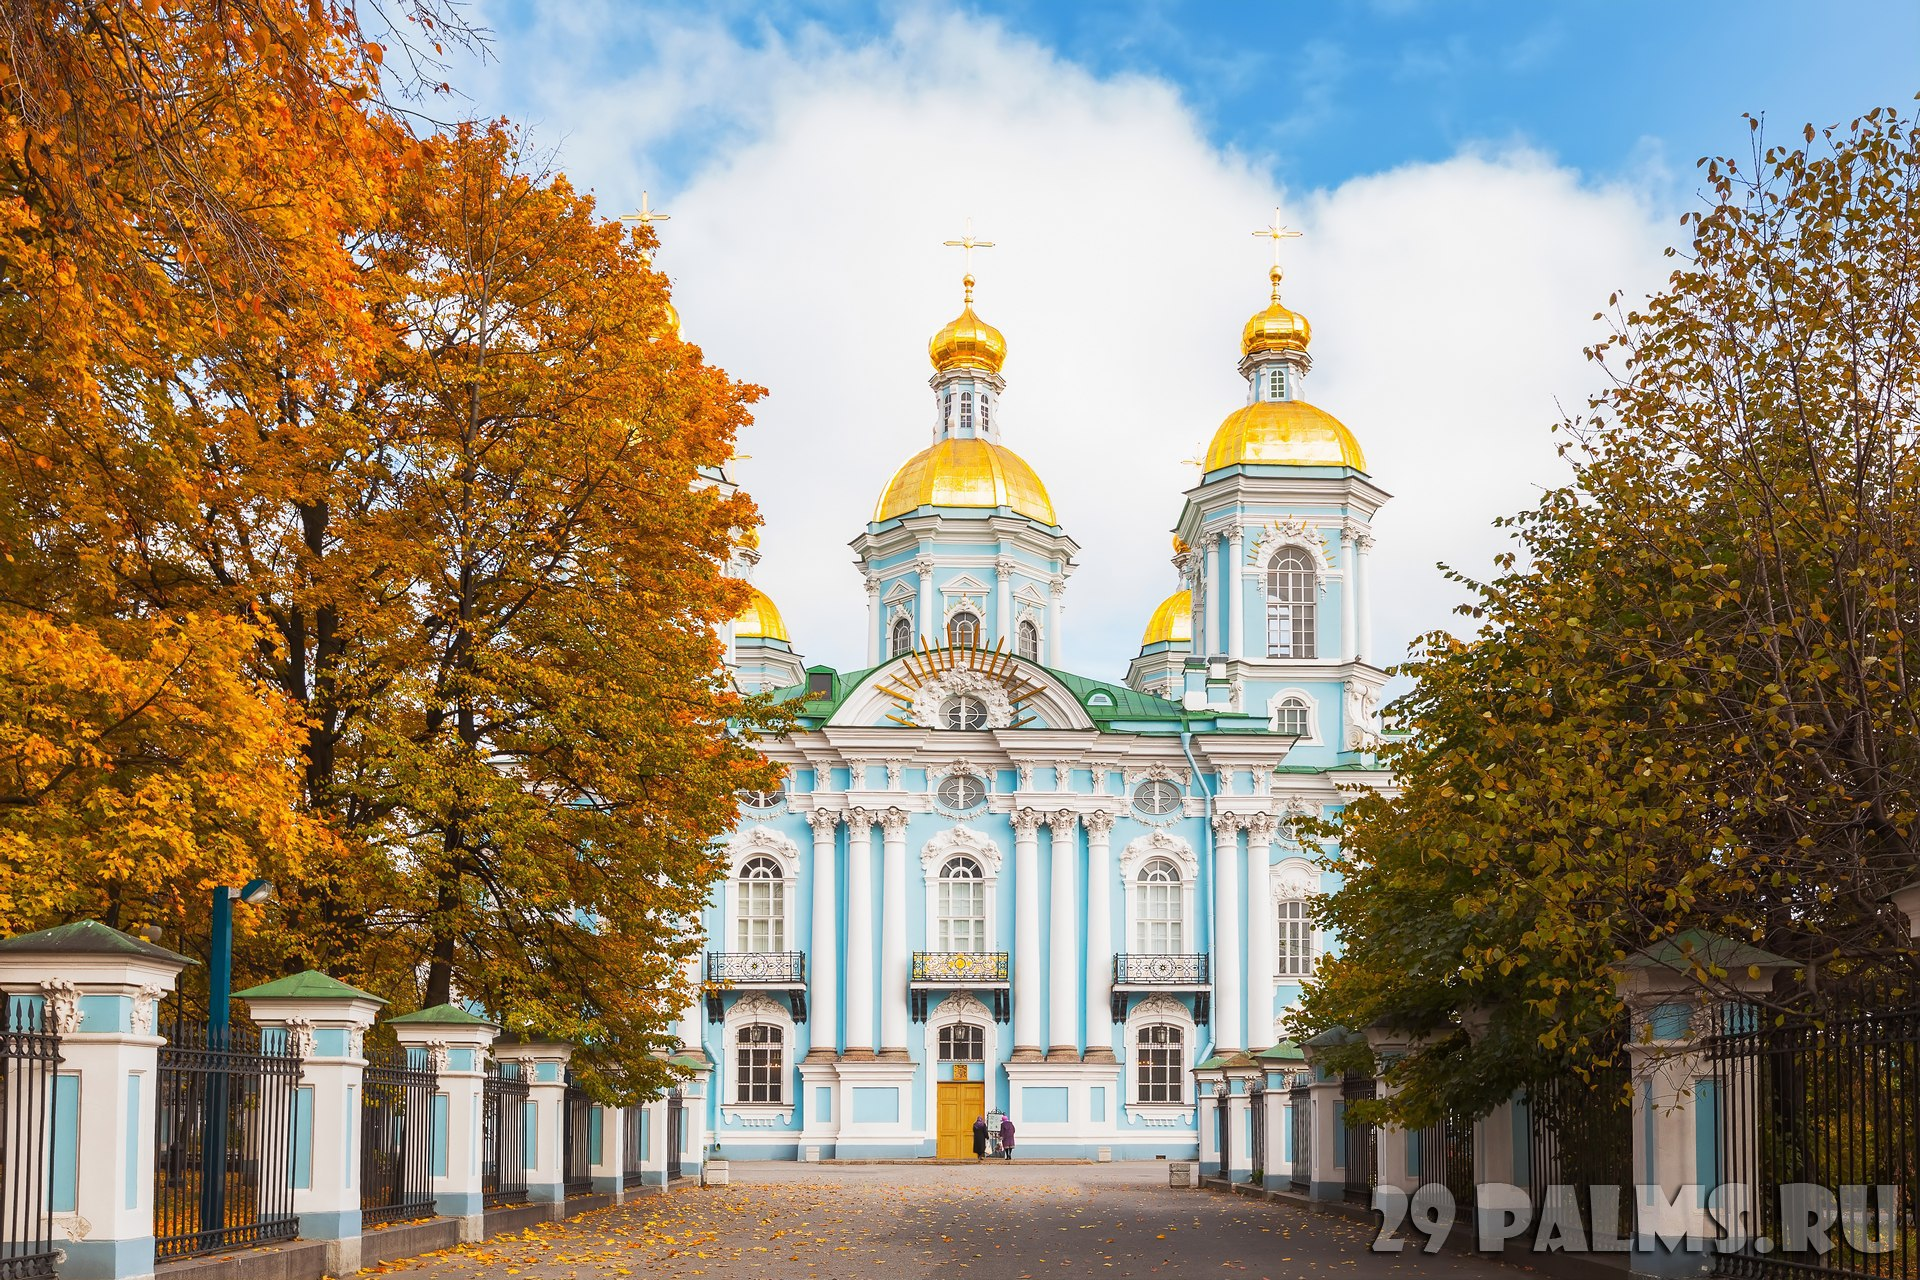 Россия. Санкт-Петербург. Никольский морской собор. The St. Nicholas Naval Cathedral. St. Petersburg, Russia. Фото paanna - Depositphotos